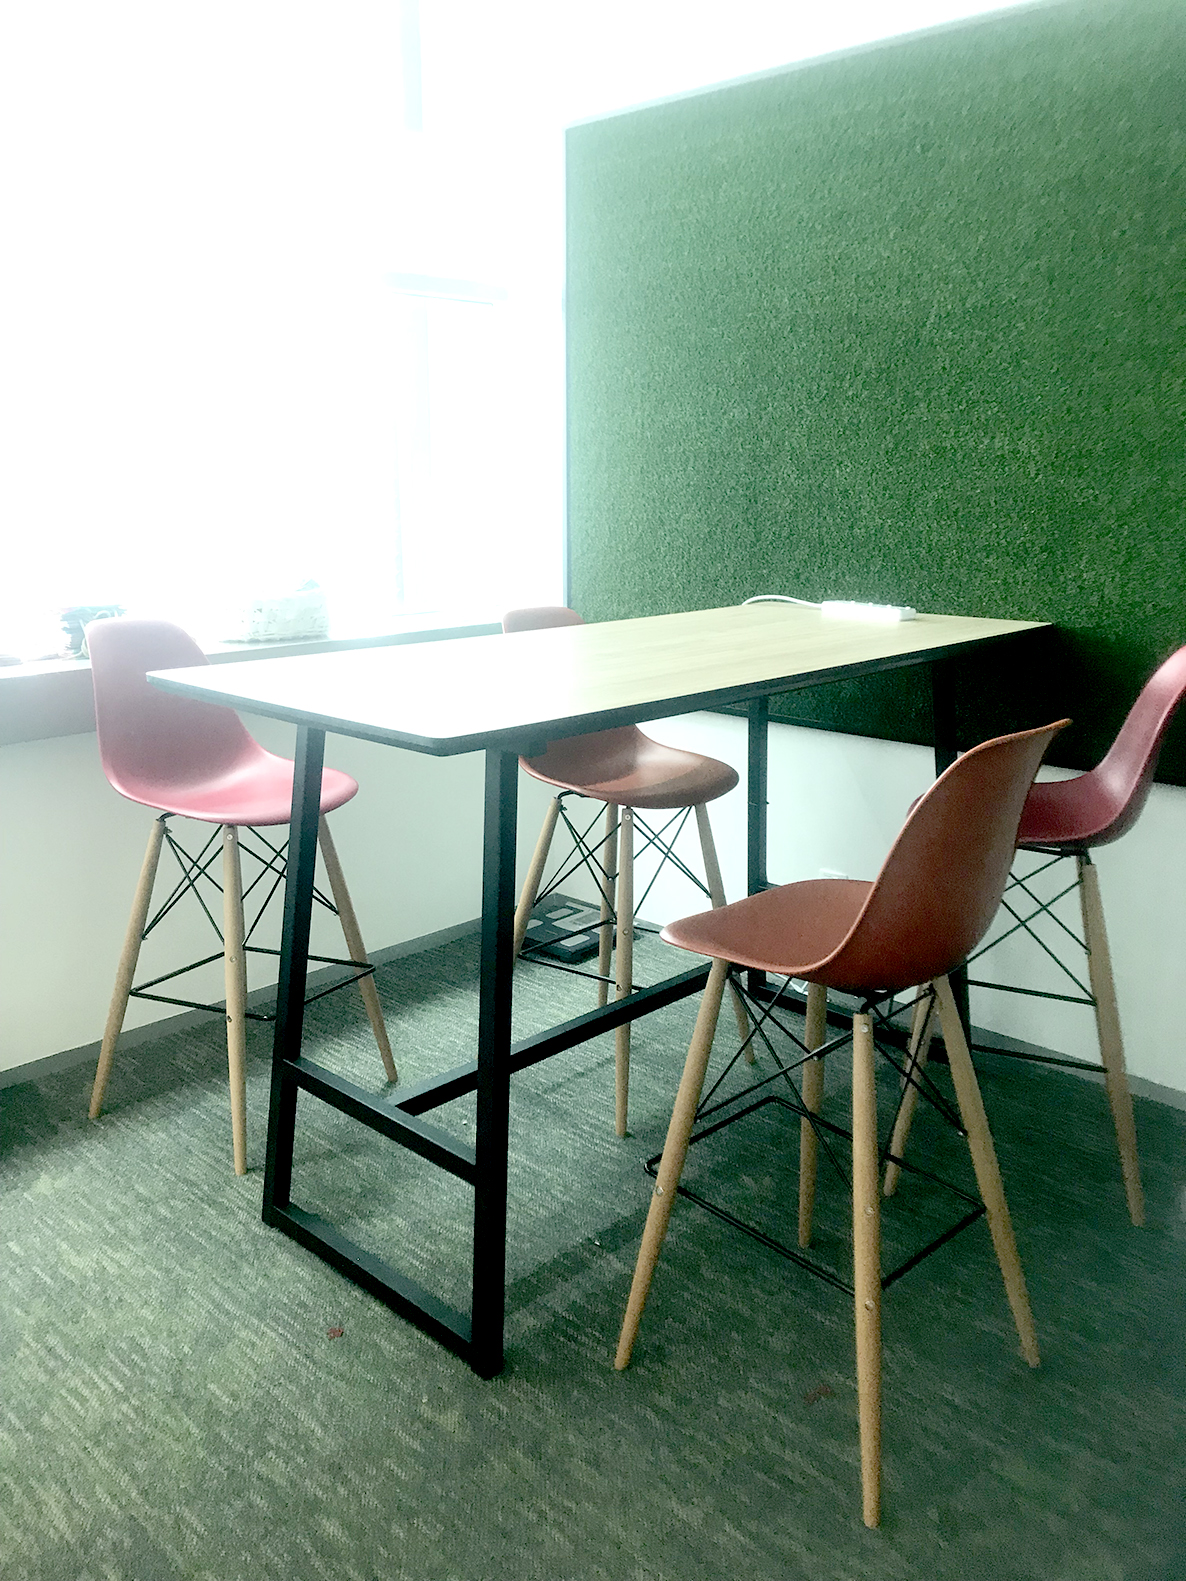 Robert Bosch (SEA) Pte Ltd | Product Seen: [Anderson Bar Table – Customisable & Argo – PP + Tower Barchair]